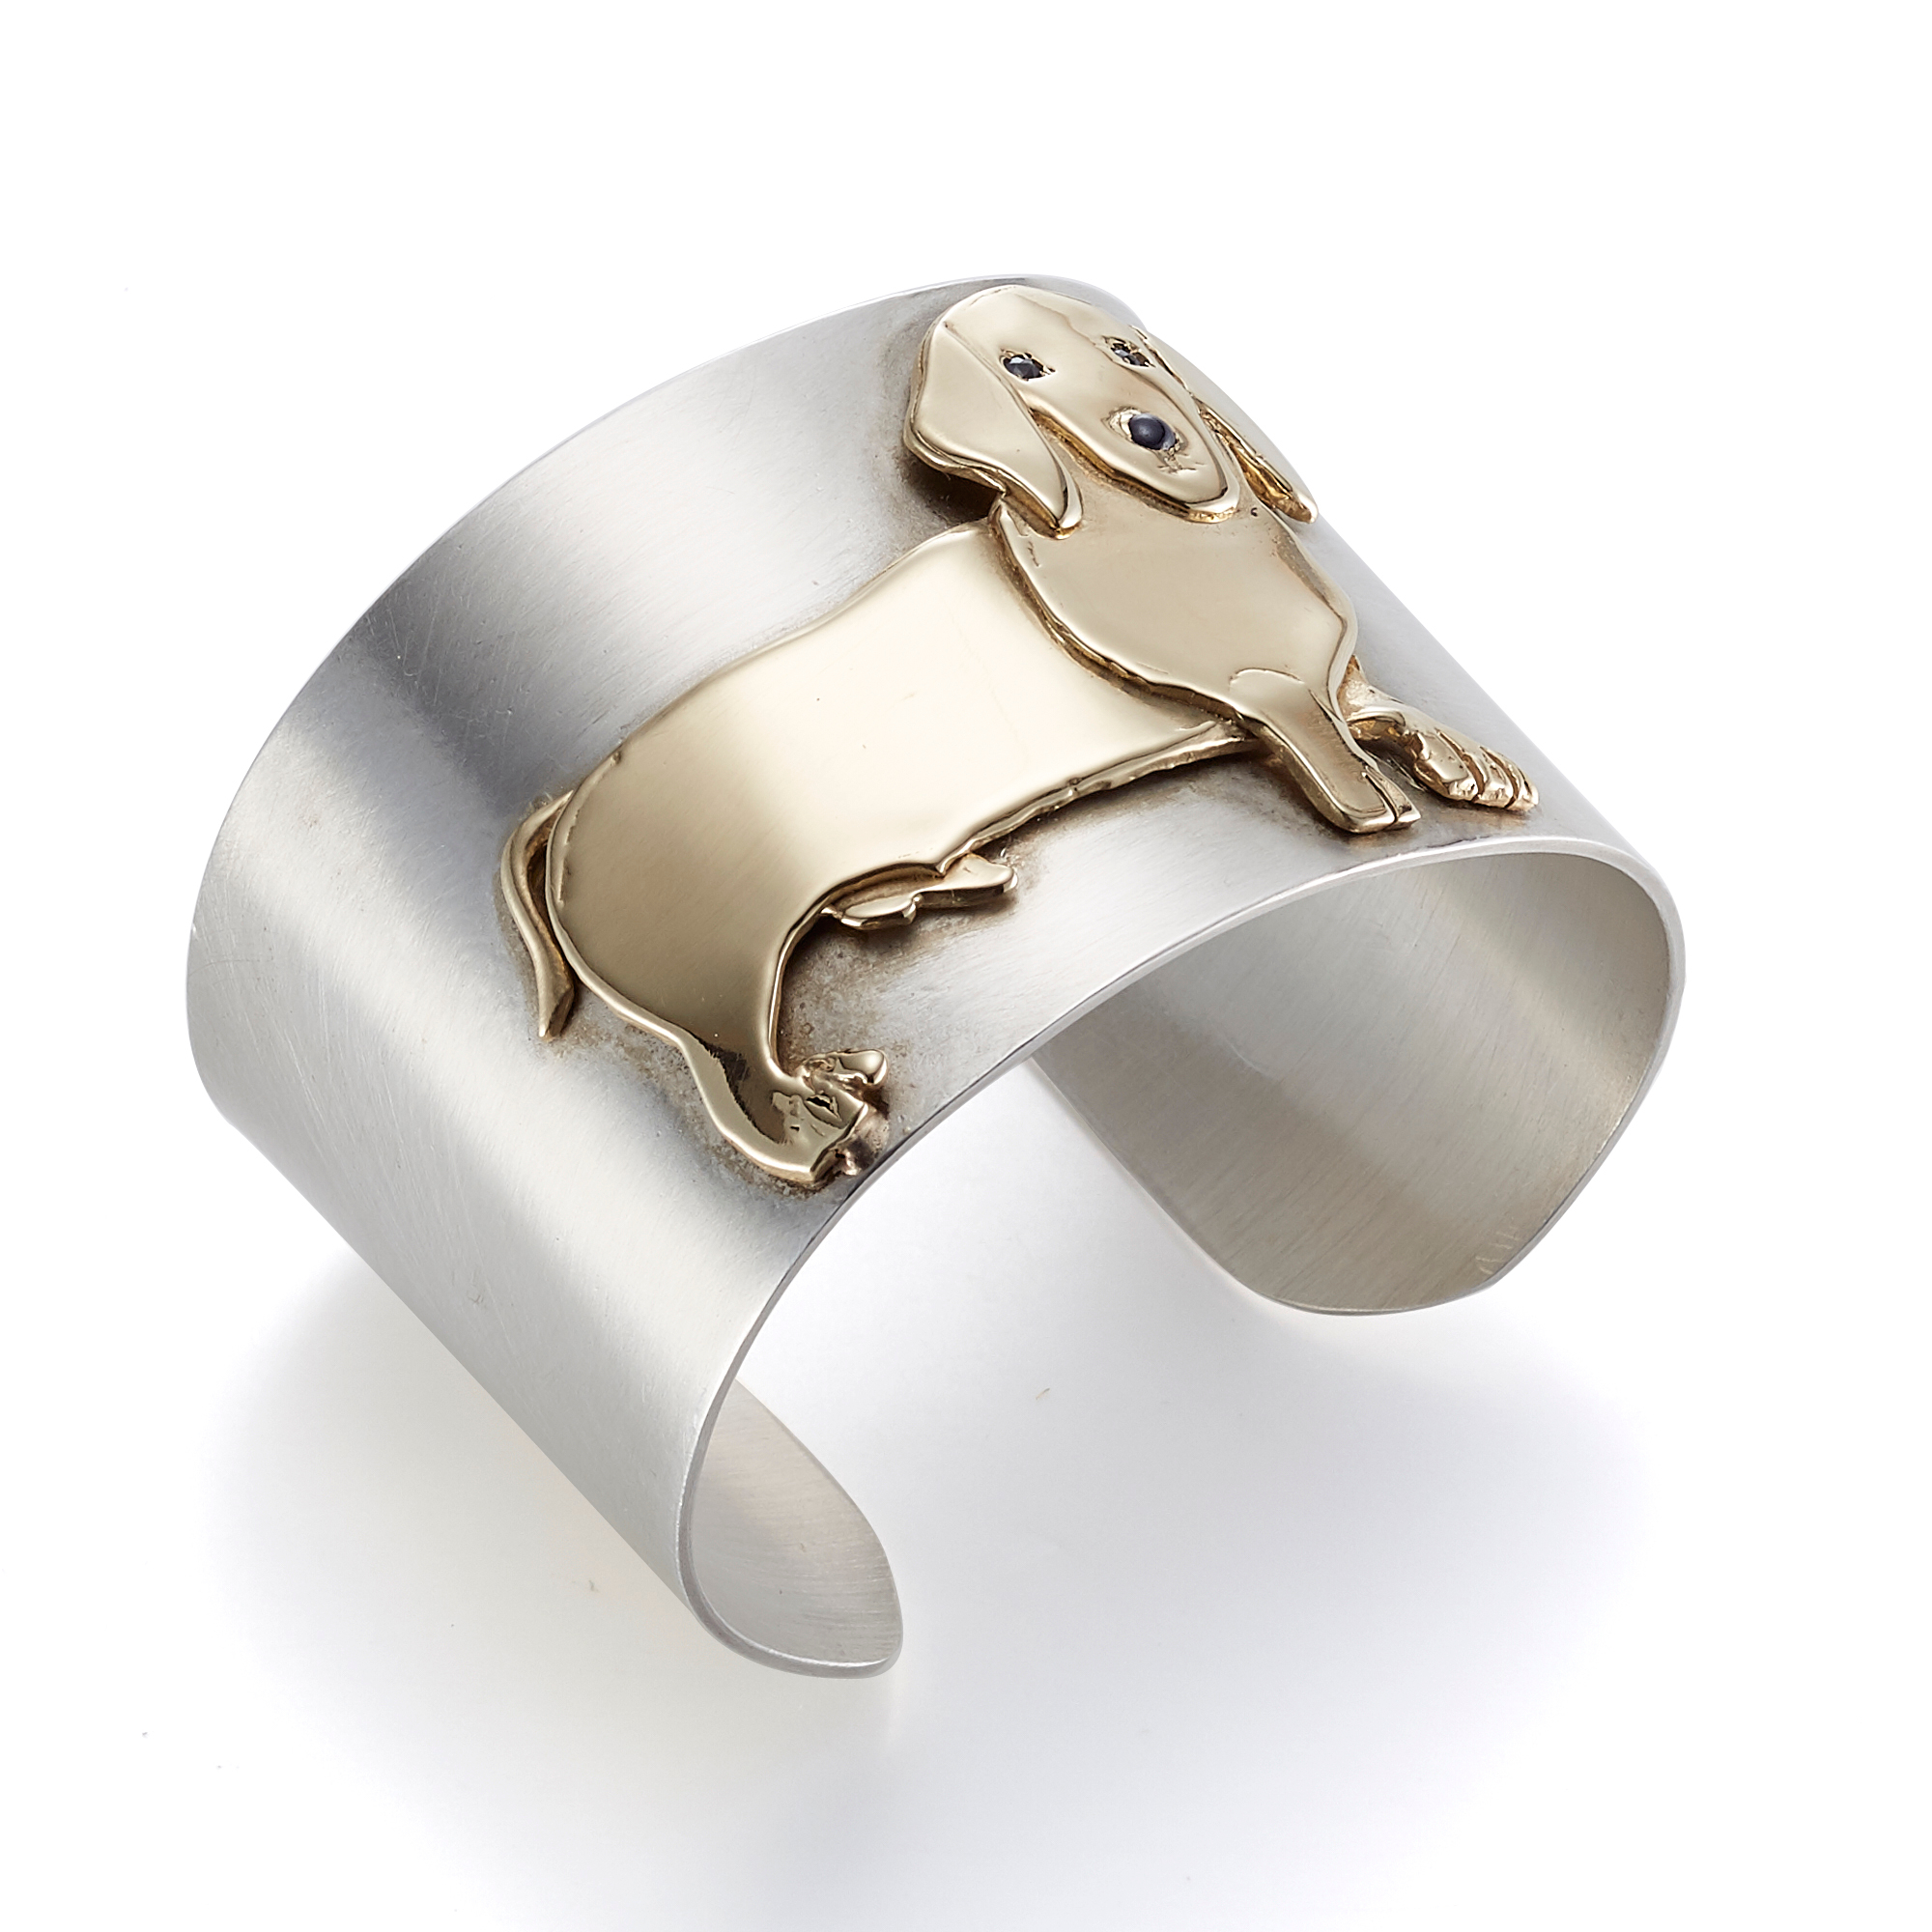 Mia Fonssagrives-Solow Polished Silver & White Gold Dachshund Cuff